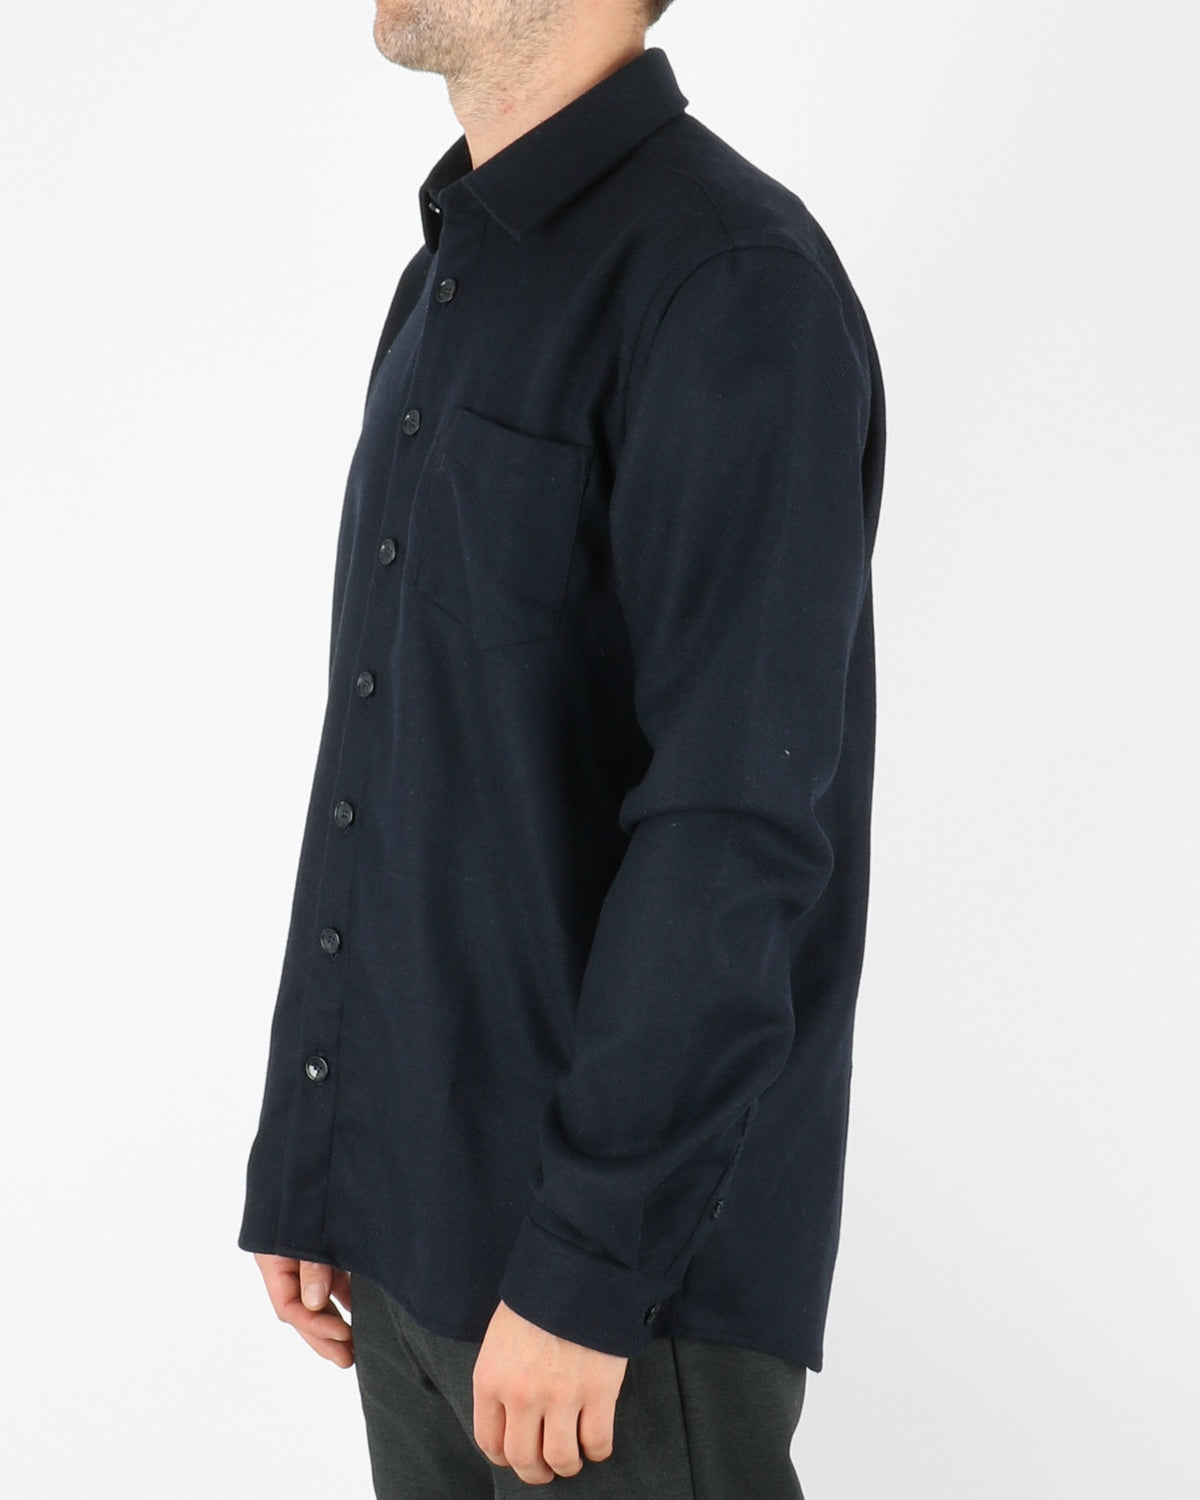 libertine libertine_miracle shirt_dark navy twill_2_4